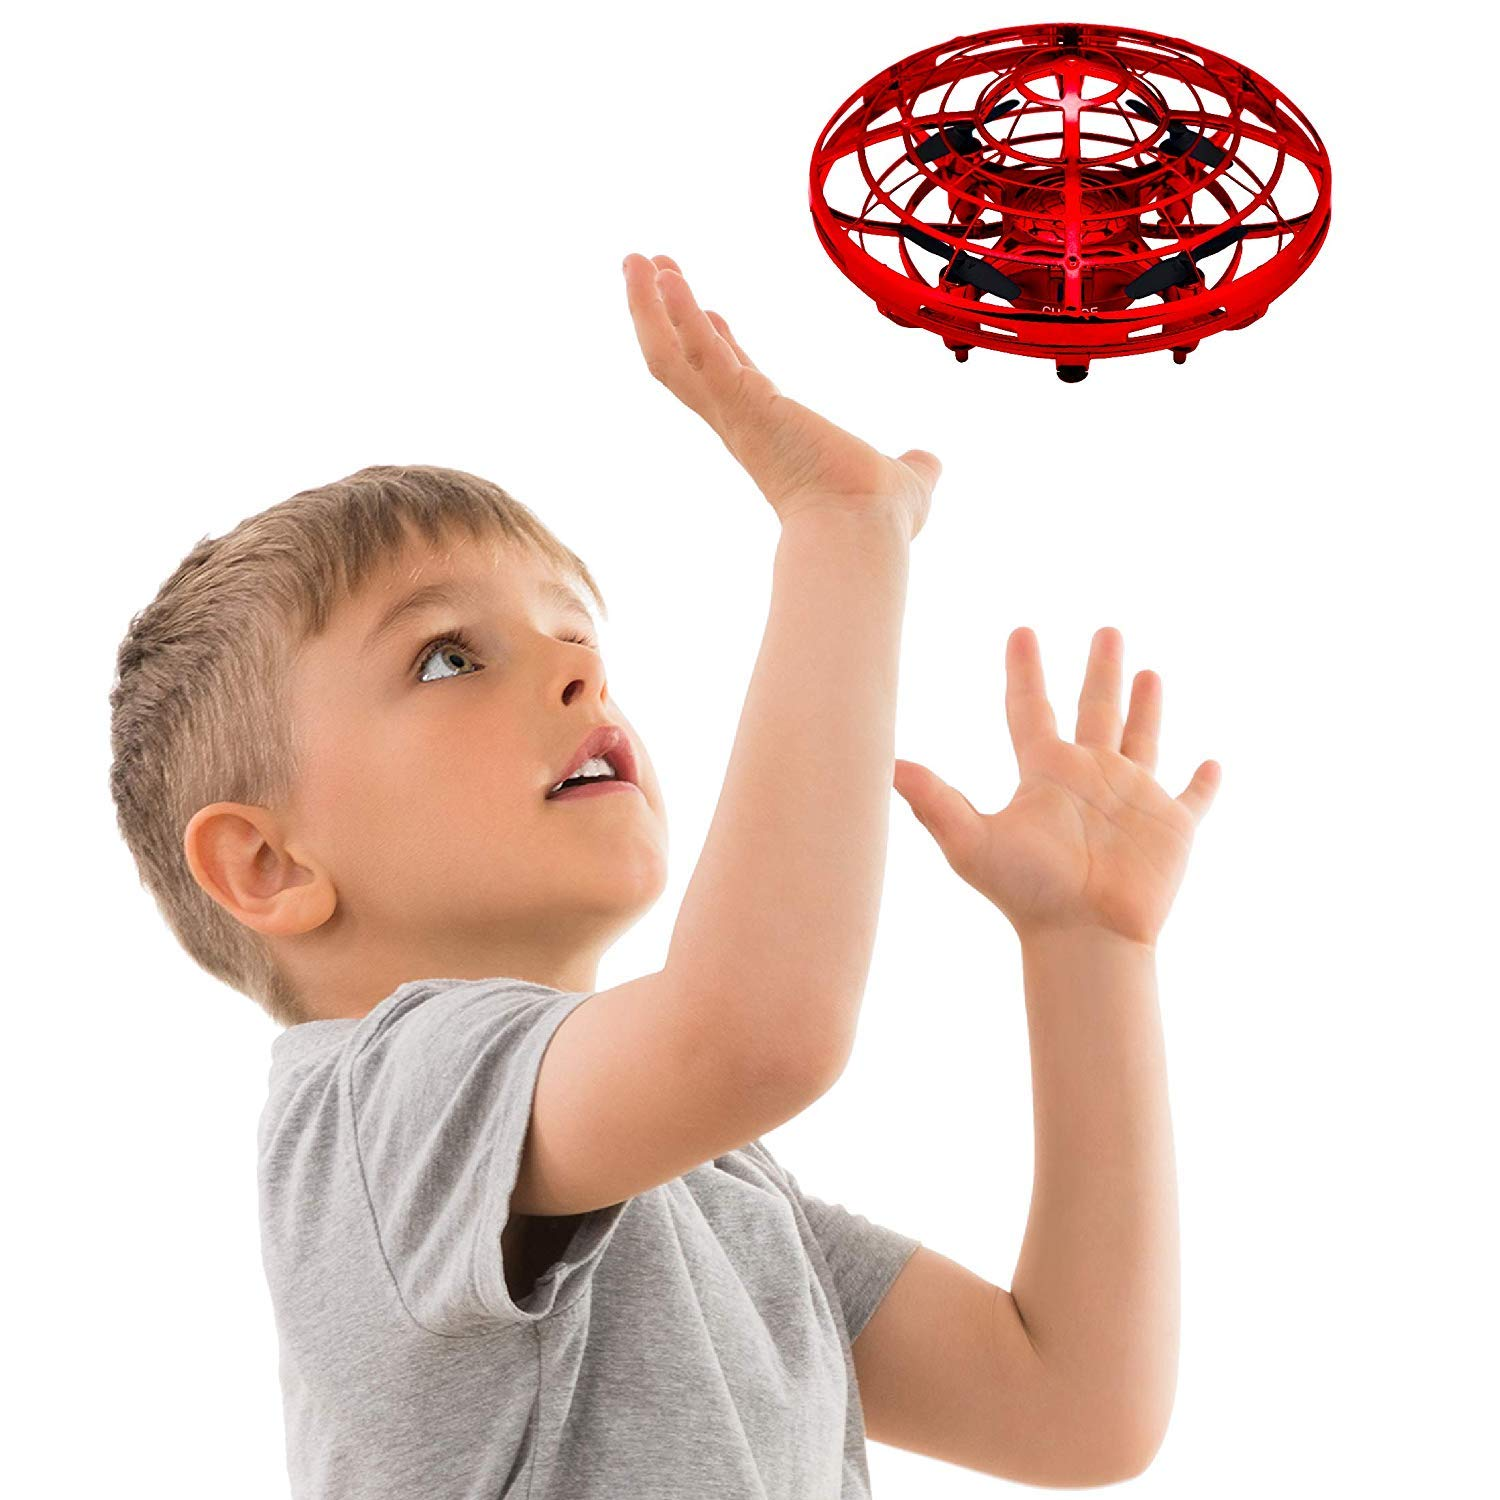 Jettime Flying Toys Drones for Kids Mini Drones Hand Controlled UFO Flying Ball with Infrared Induction Interactive Drone Indoor Toys 360° Rotating and LED Lights for Boys and Girls, Red by Jettime